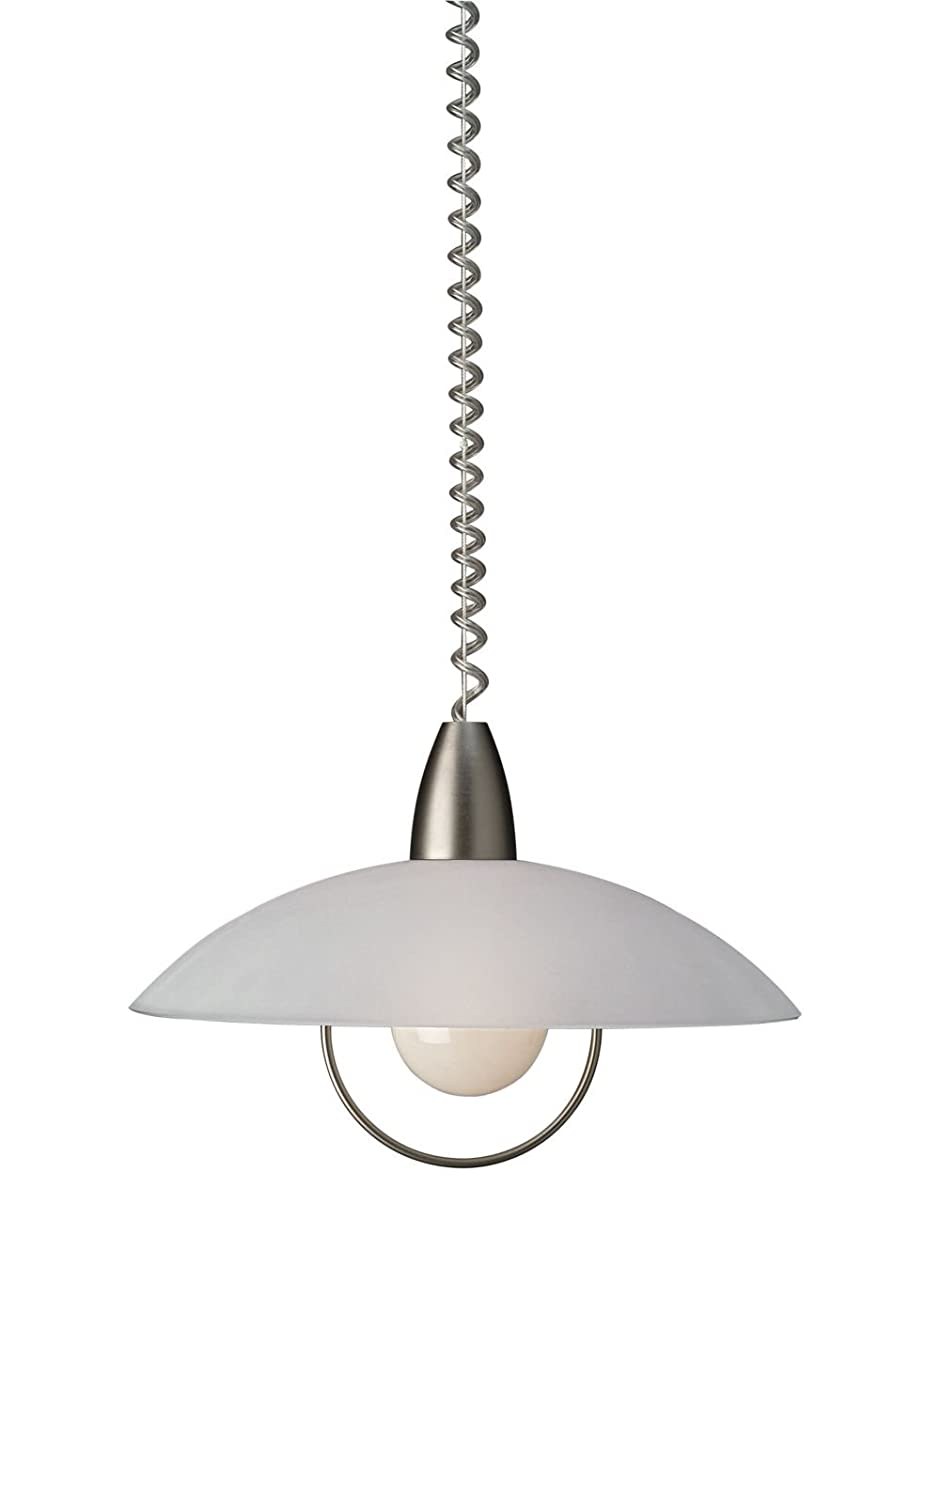 Rise and fall pendant light fittings - Massive Remero Ceiling Light Stainless Steel Requires 1 X 75 Watts E27 Bulb Amazon Co Uk Lighting